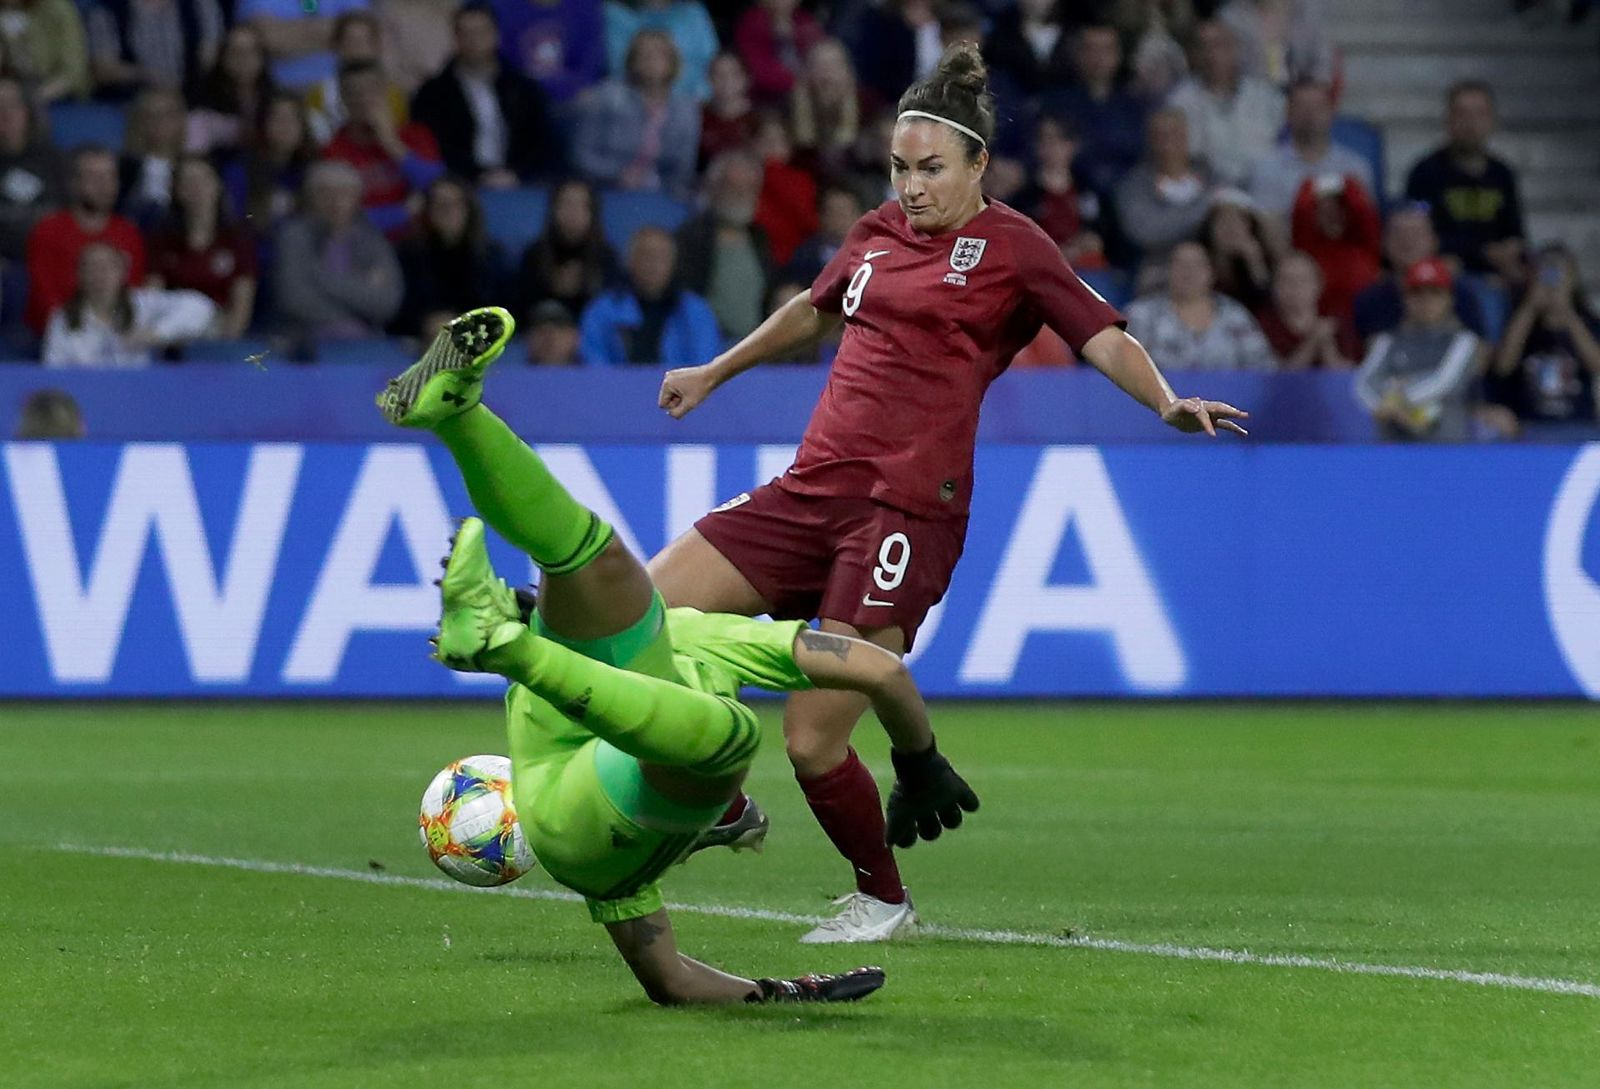 England's Jodie Taylor, rear, scores the opening goal during the Women's World Cup Group D soccer match between England and Argentina at the Stade Oceane in Le Havre, France, Friday, June 14, 2019. (AP Photo/Alessandra Tarantino)